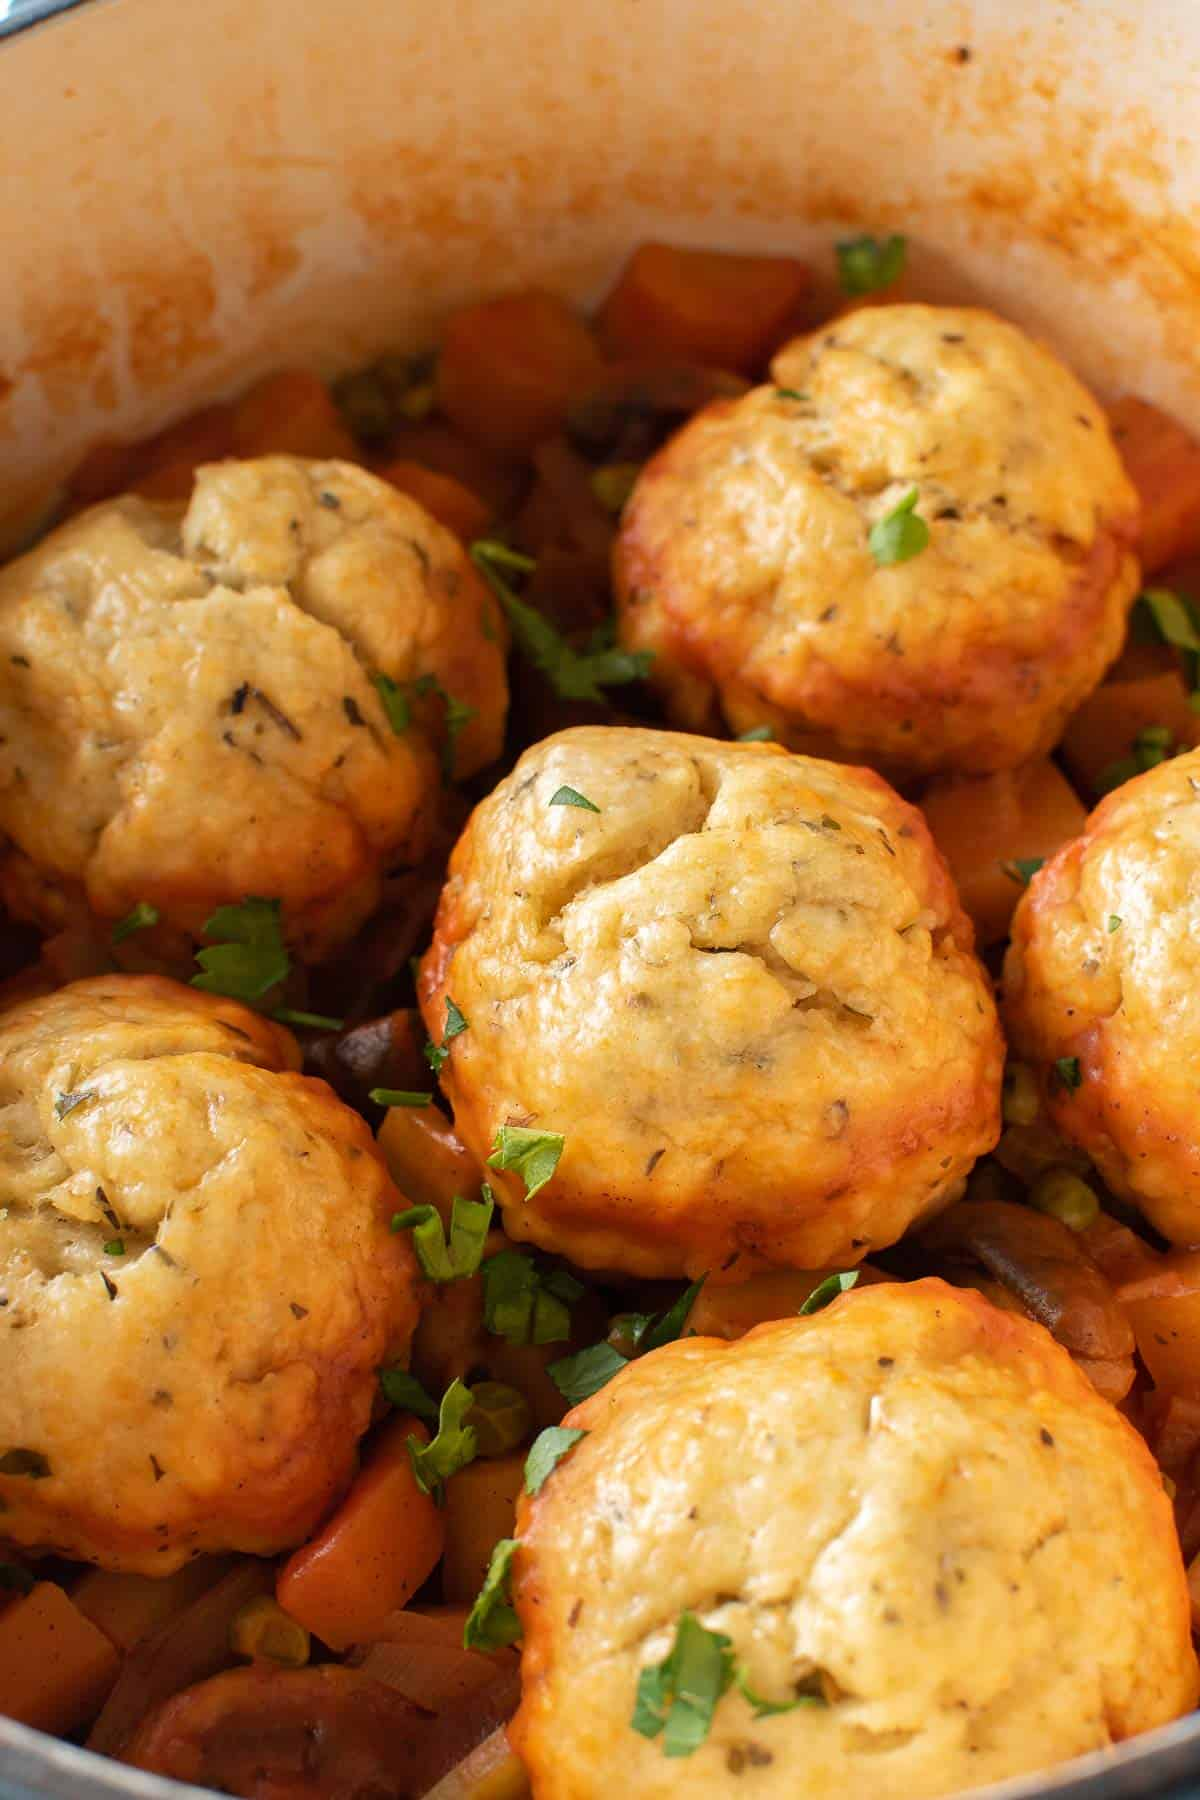 Close up of a pot of stew with dumplings on top.